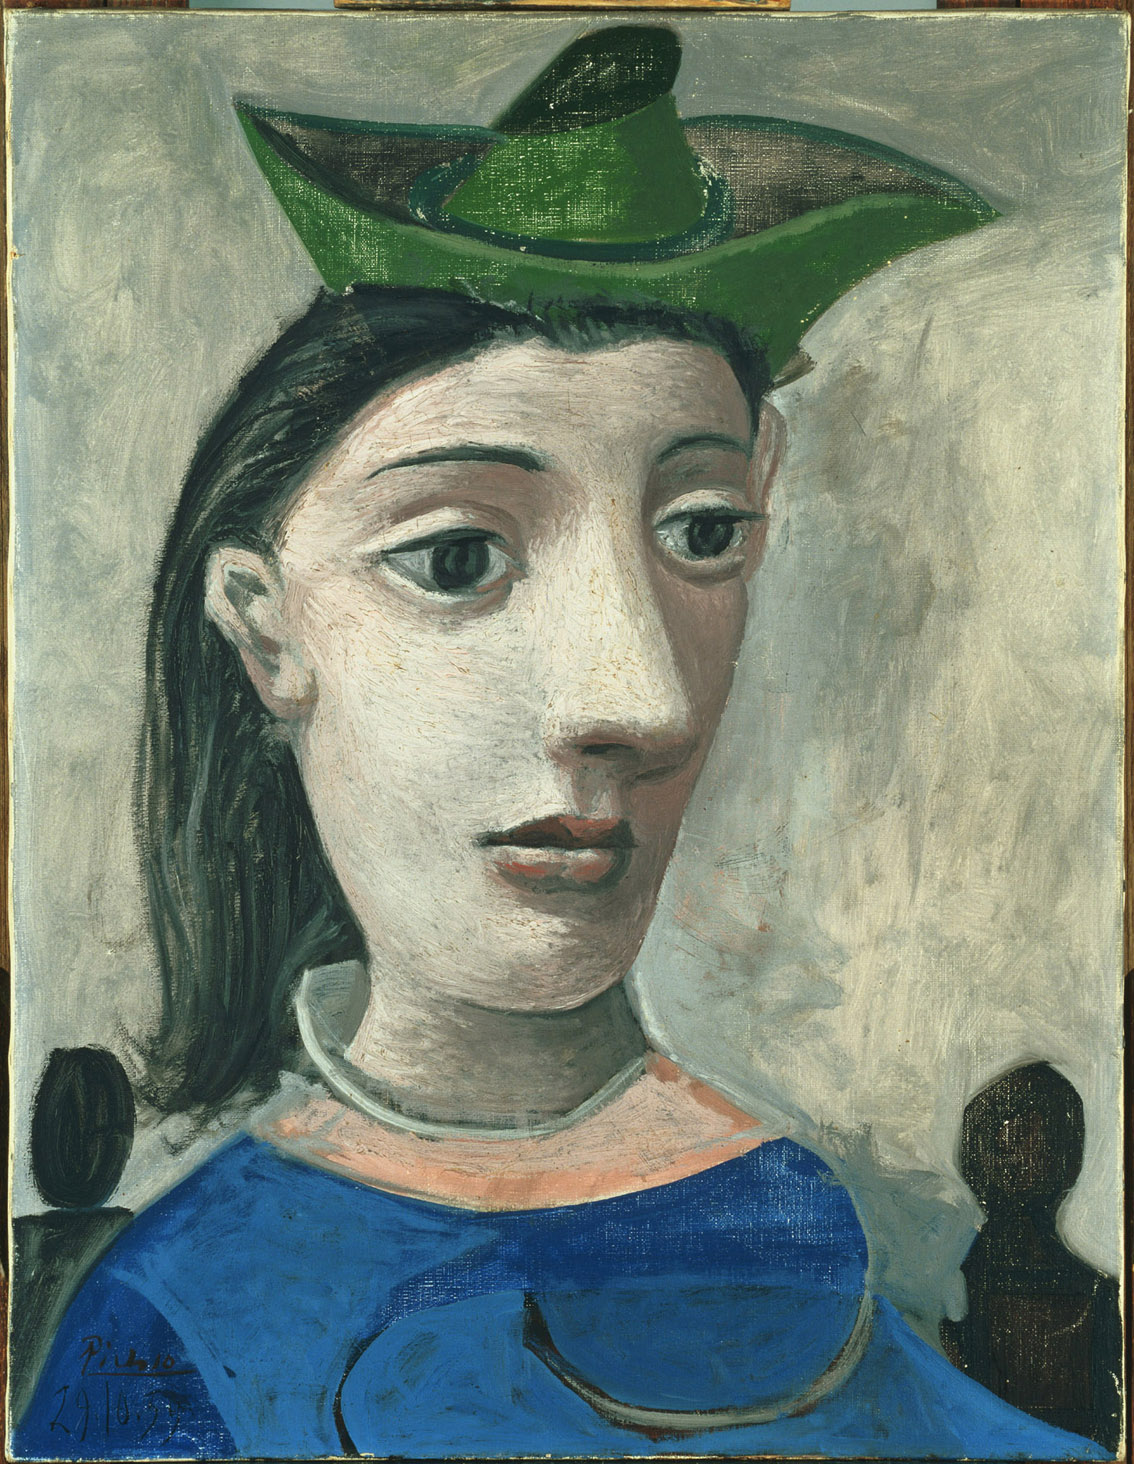 Mujer con sombrero verde, por Pablo Picasso, 1939, óleo sobre lienzo, 65 x 50,2 cm, The Phillips Collection, Washington, D.C., donado por Carey Walker Foundation, 1994.